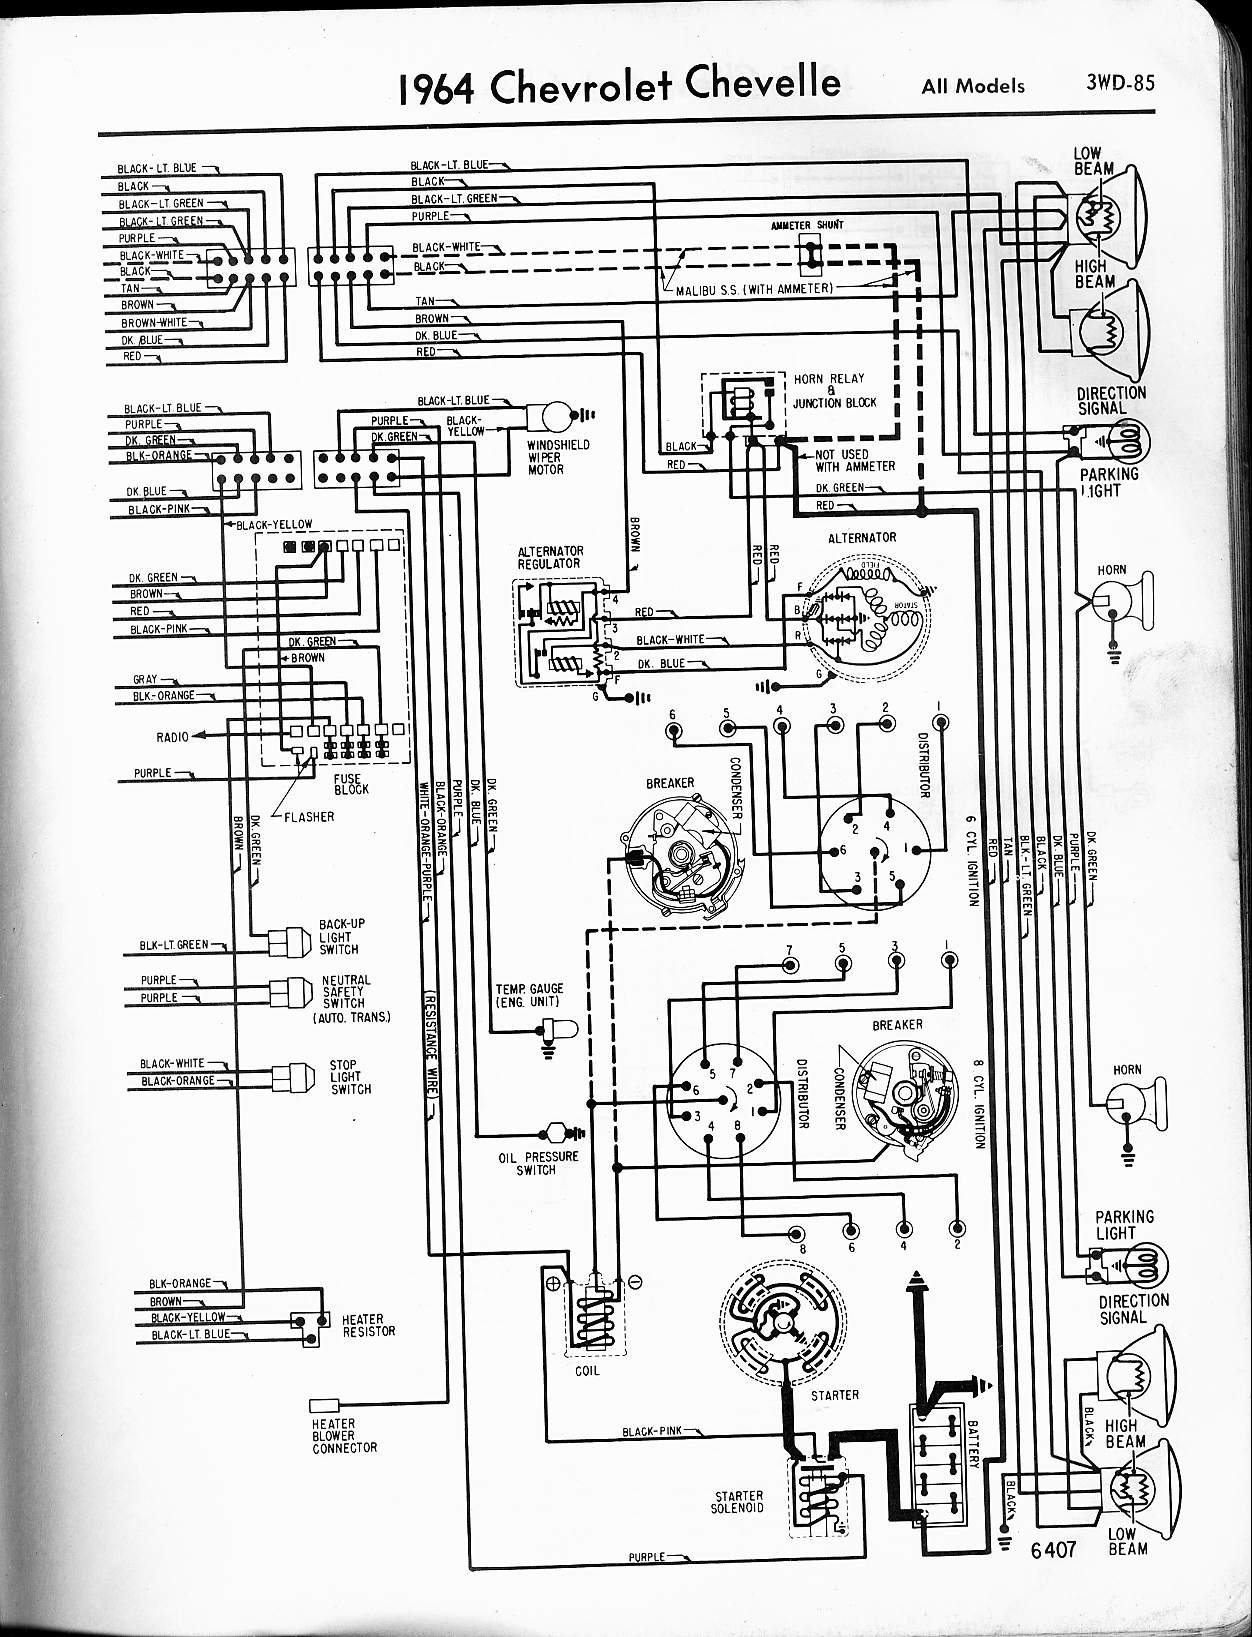 MWireChev64_3WD 085 chevy diagrams 1967 chevelle wiring diagram pdf at reclaimingppi.co